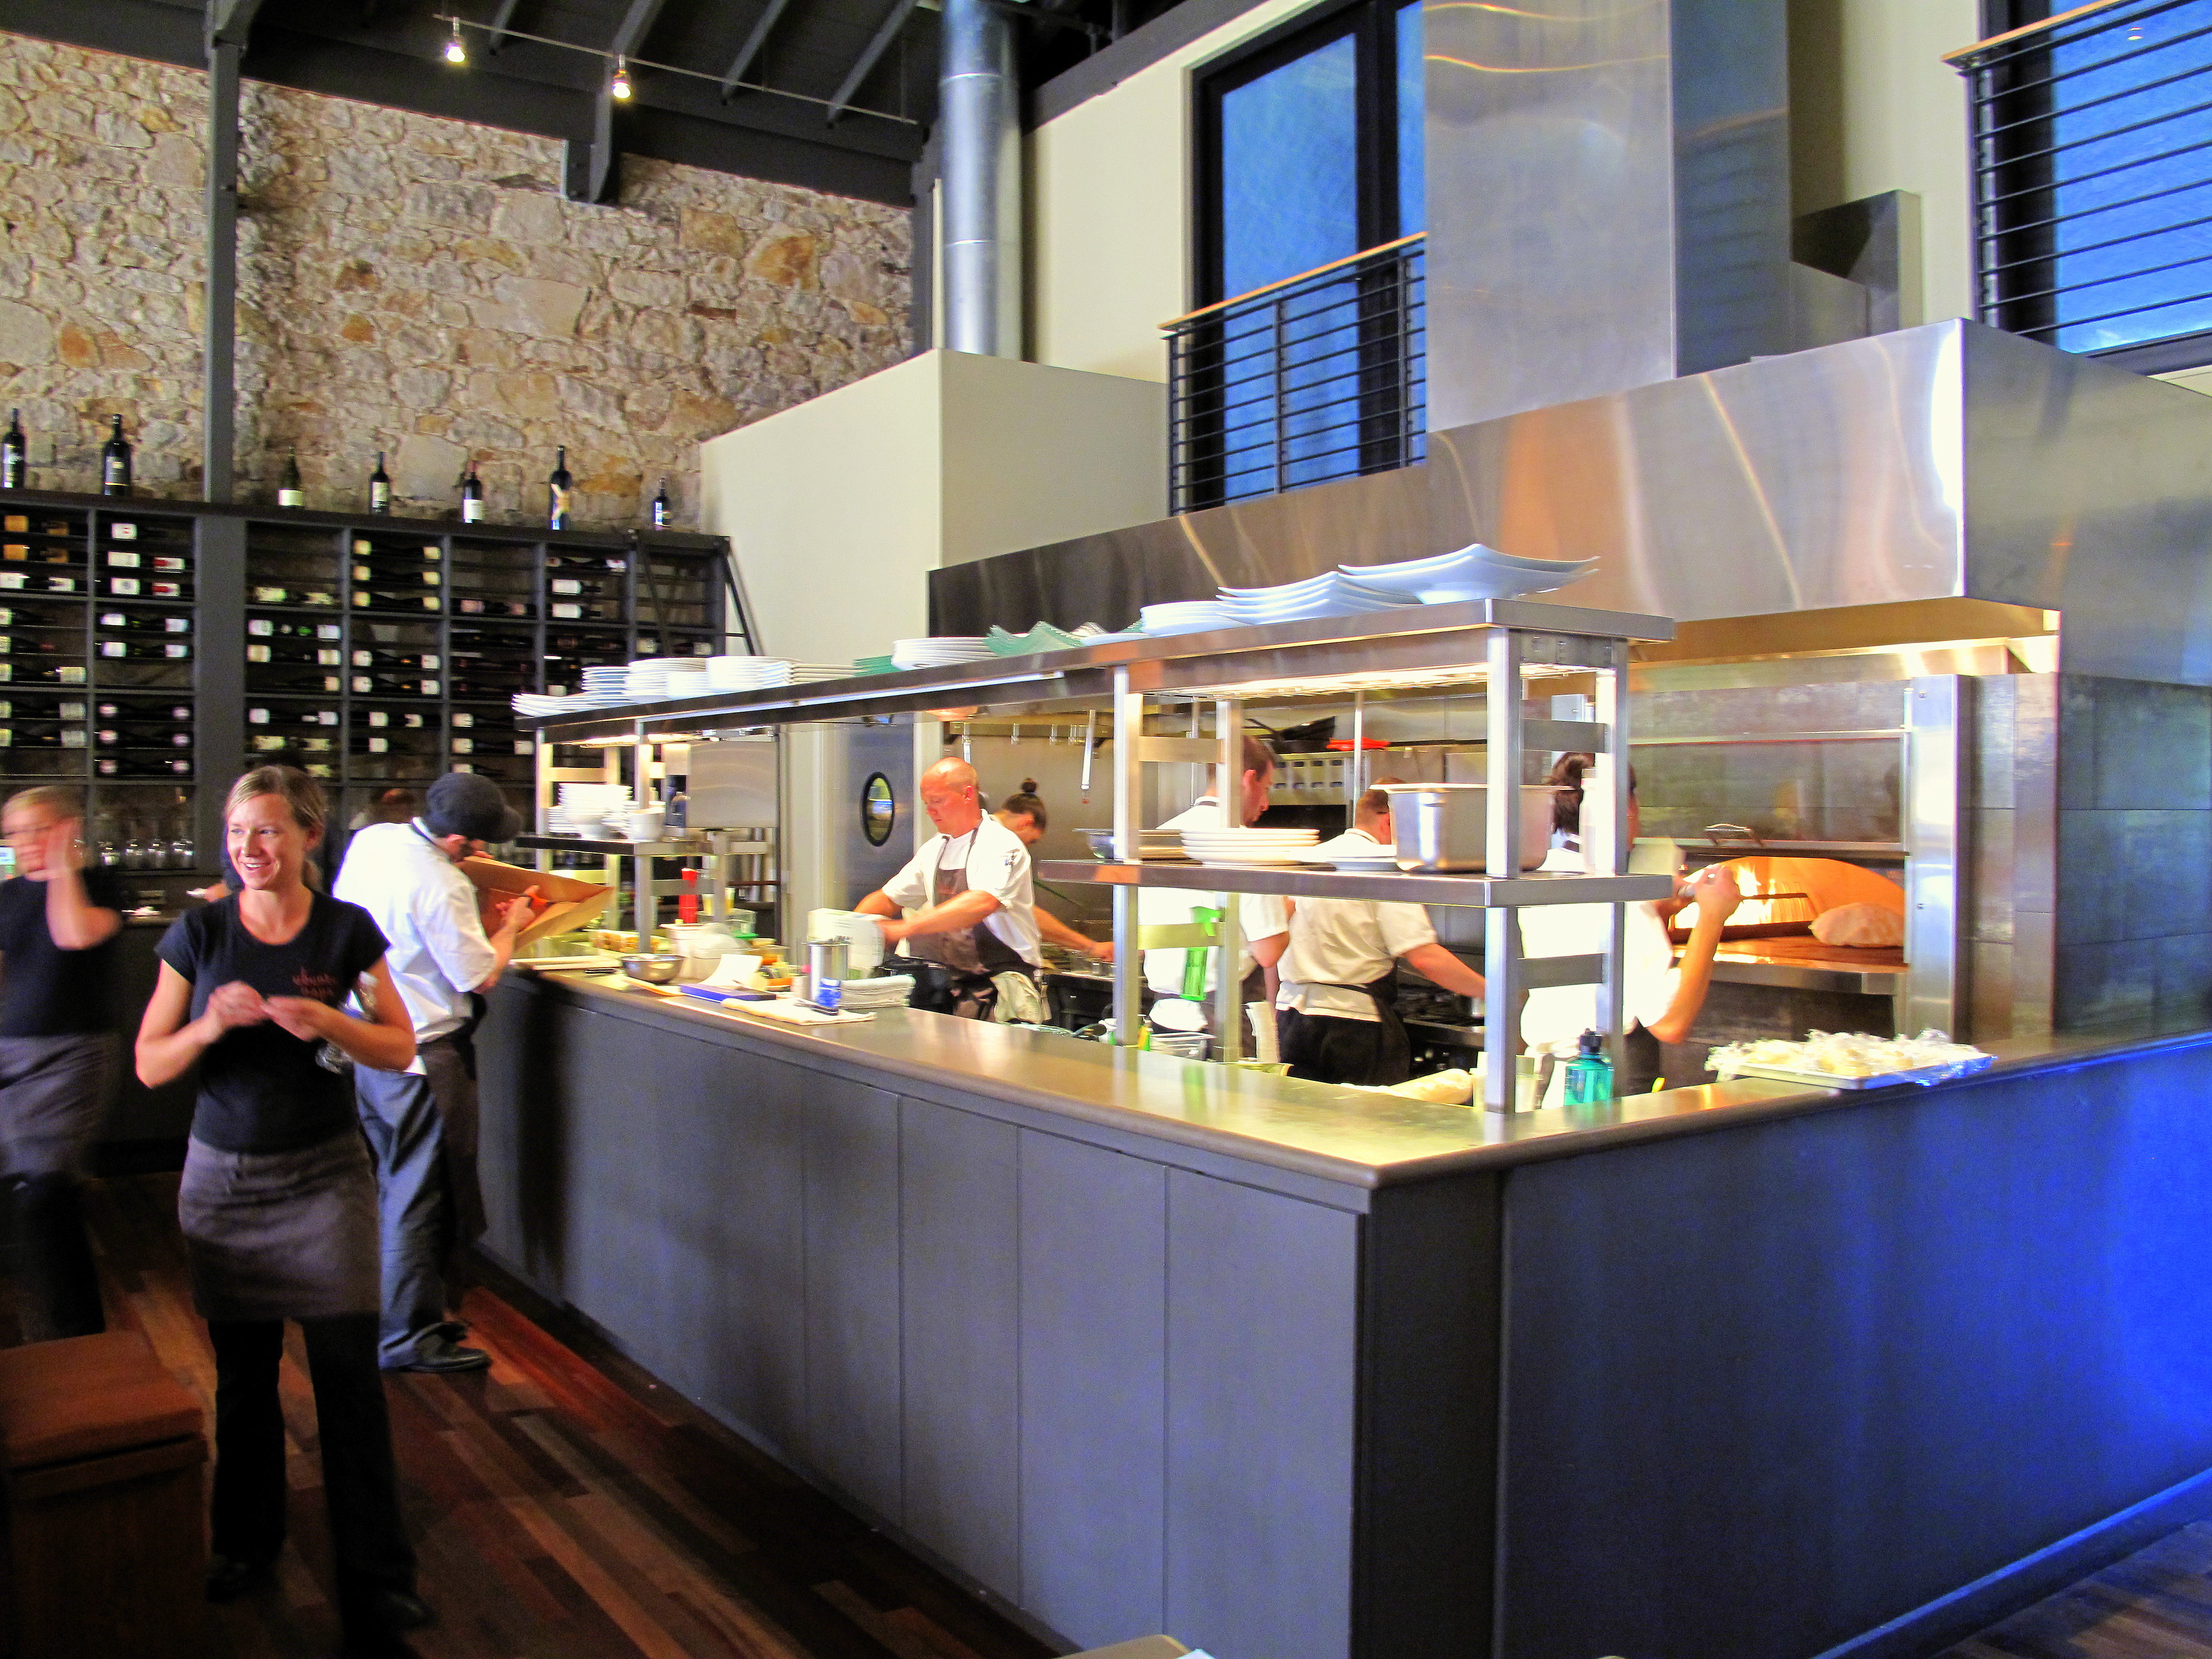 Ubuntu napa food snob for Open kitchen style